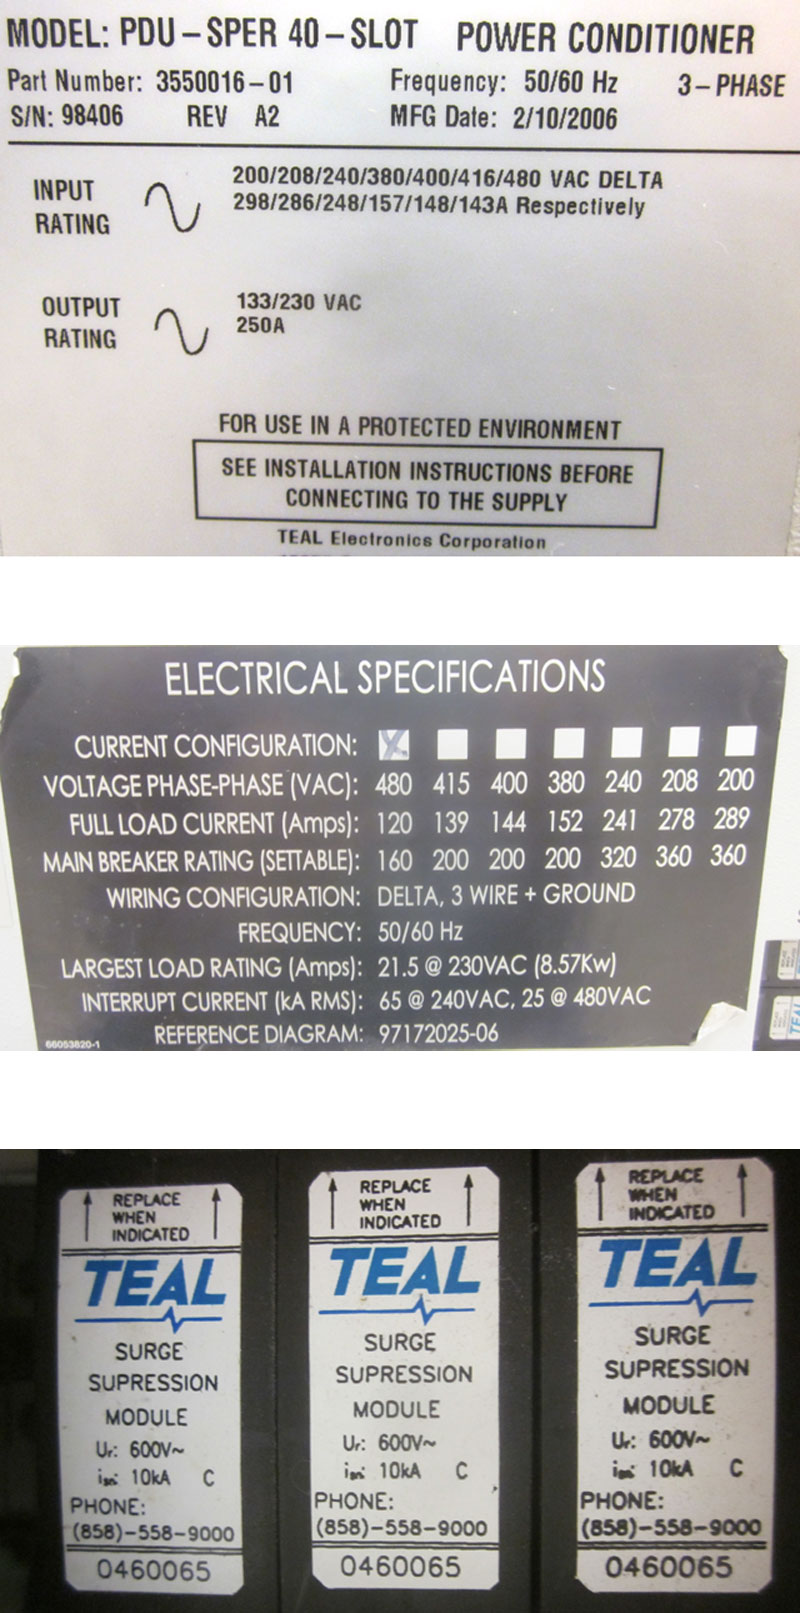 Exelent Wire Rating Amps Component - Wiring Diagram Ideas ...